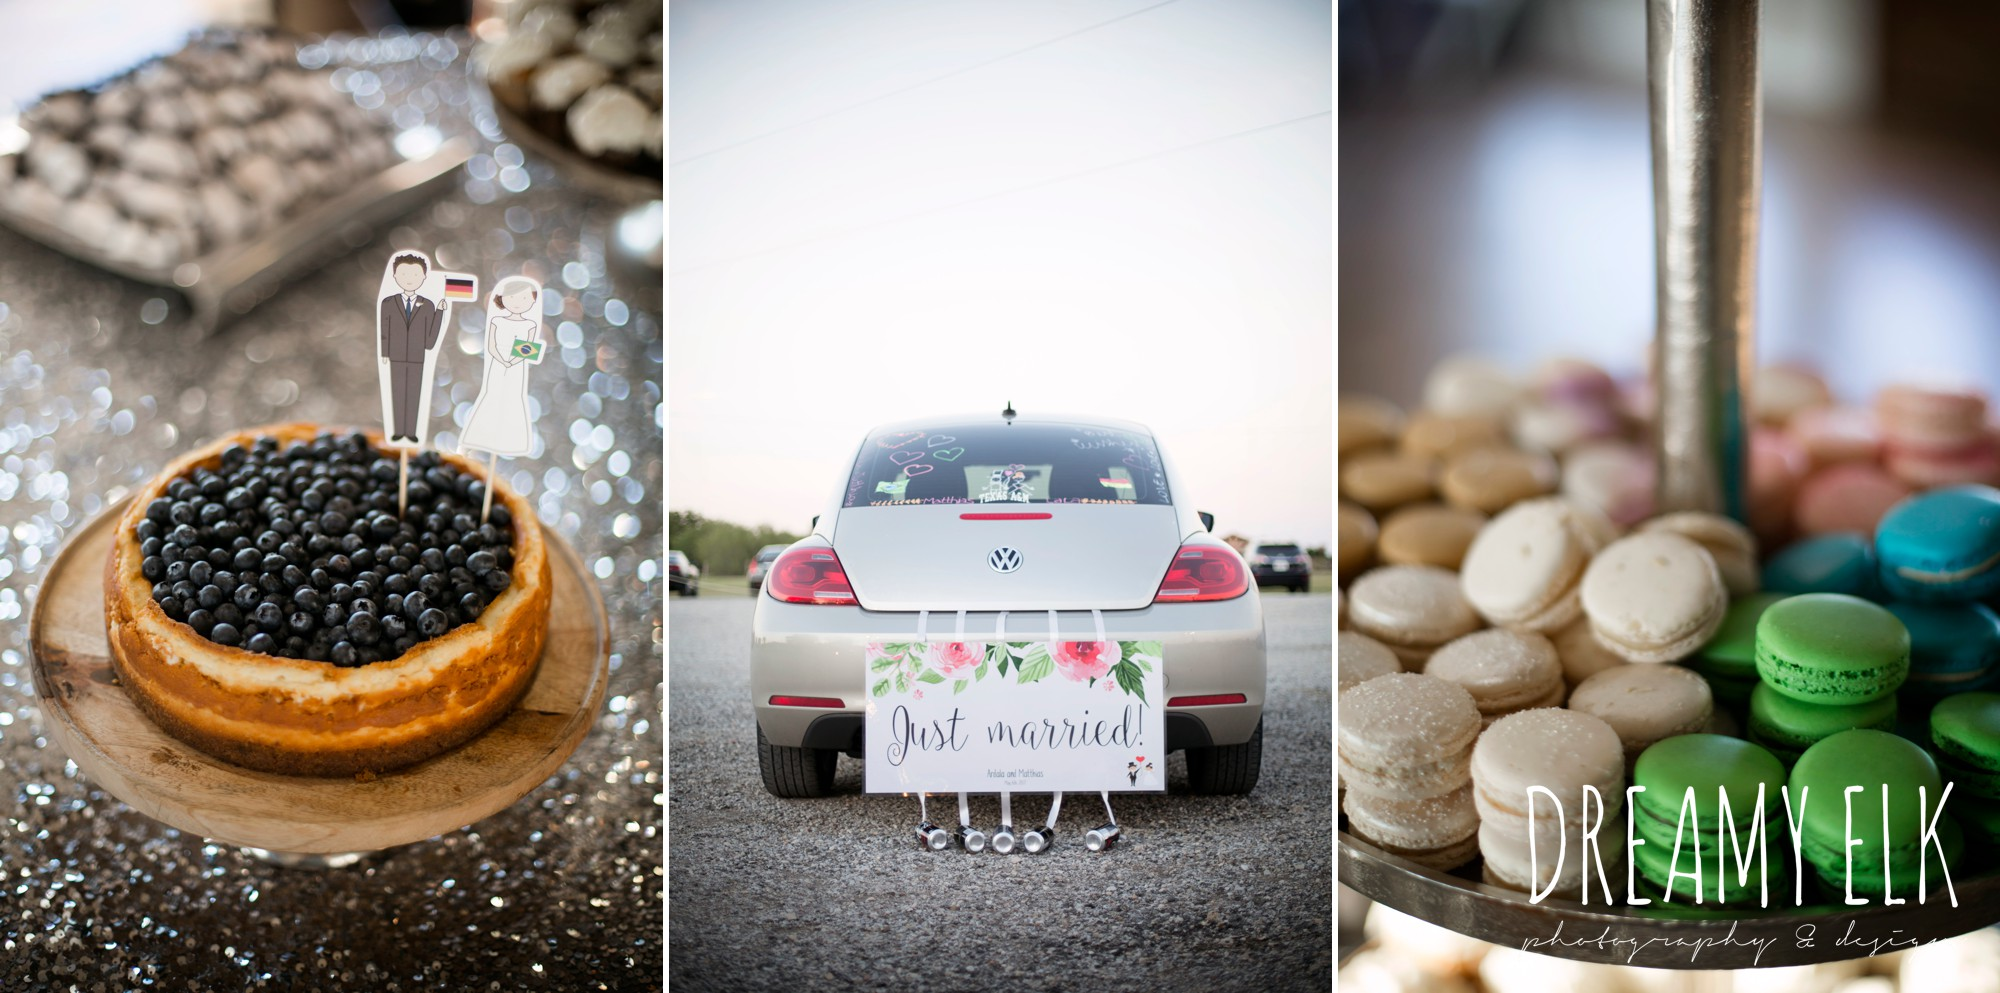 sucre macarons, d'vine cuisine, outdoor april spring wedding photo, double creek crossing, college station, texas, austin wedding photographer {dreamy elk photography and design}